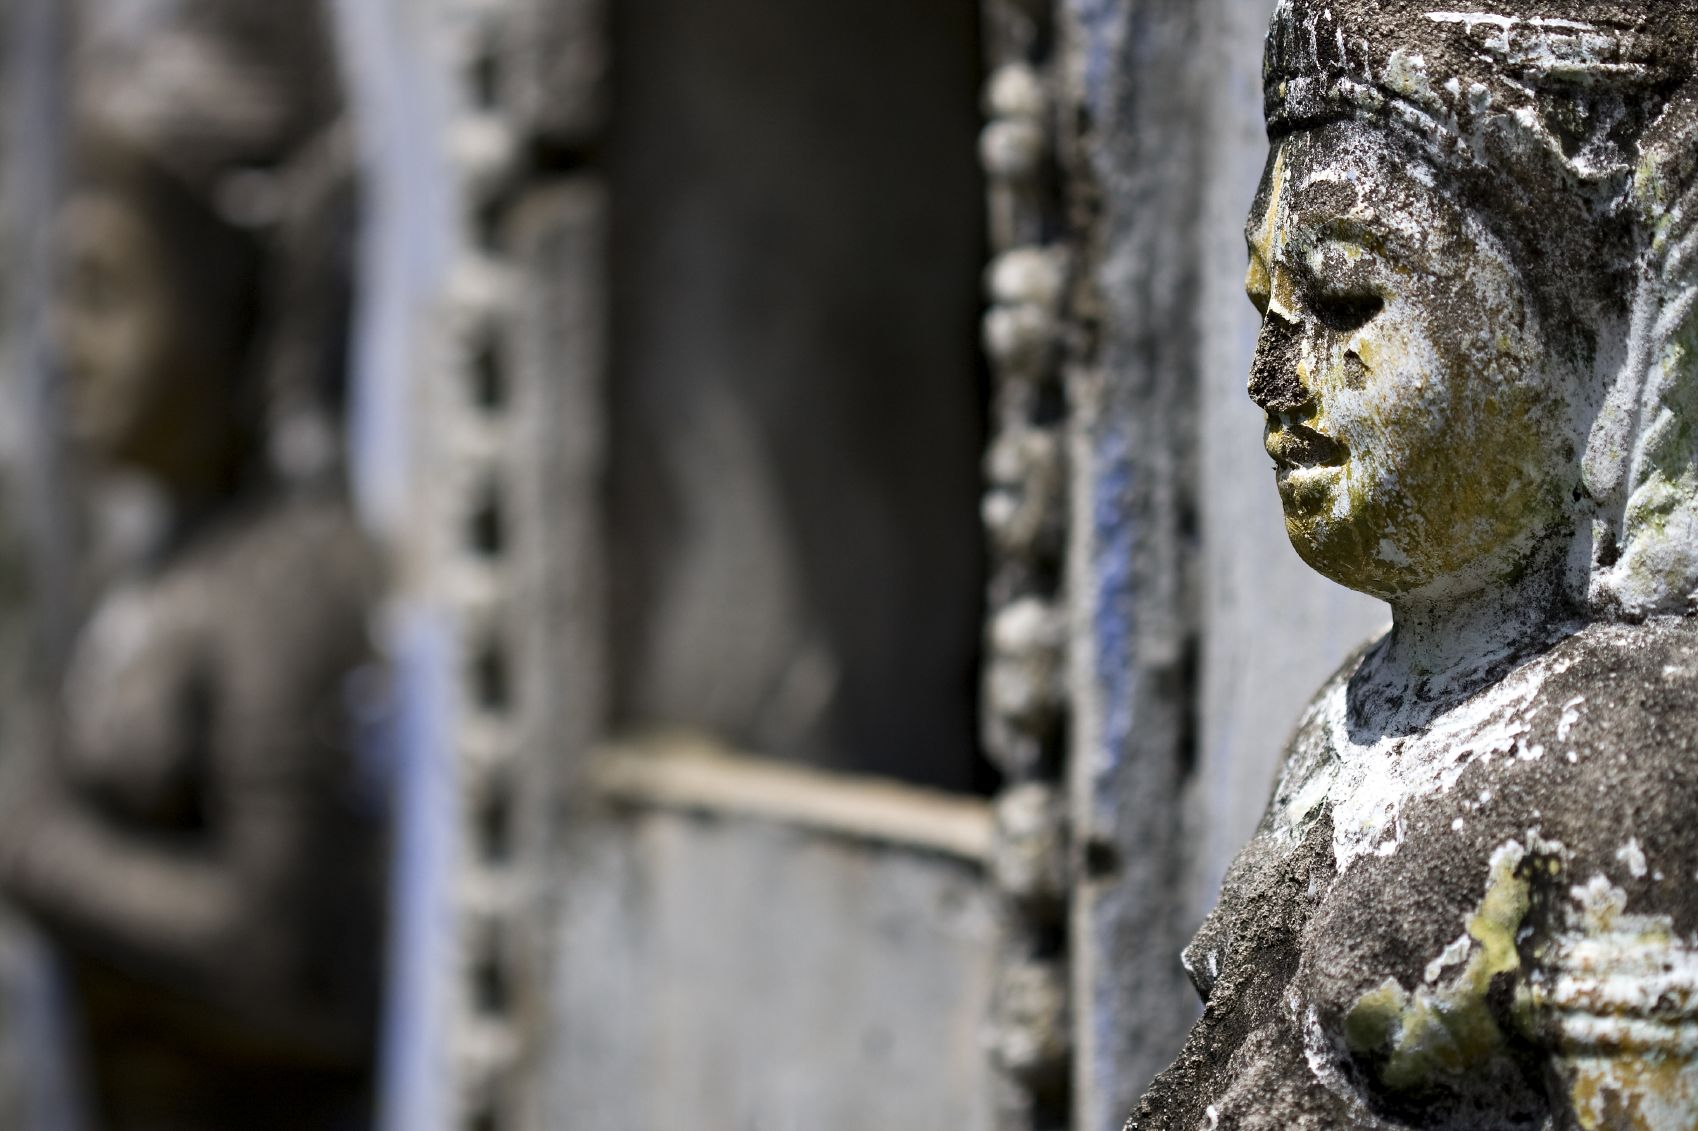 Vietnam - Hoi An - details of champa ethnic minority stone carving.jpg